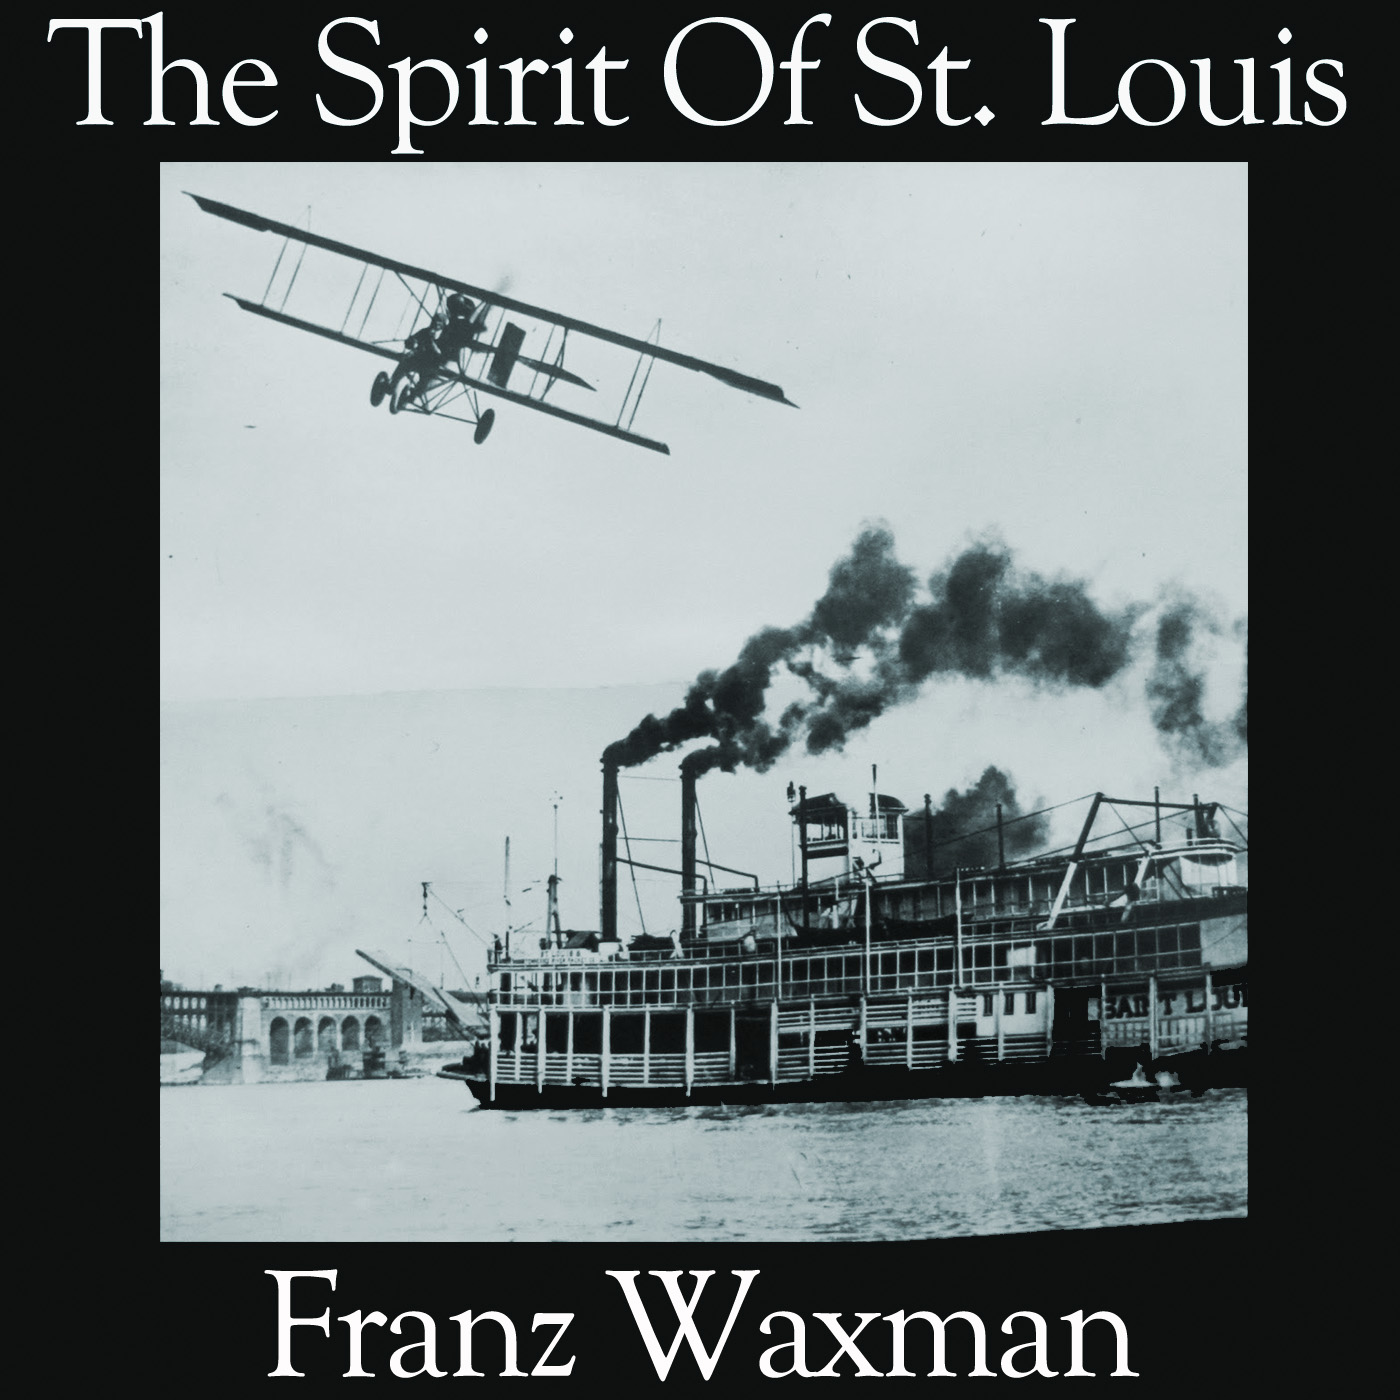 Franz Waxman - The Spirit Of St. Louis